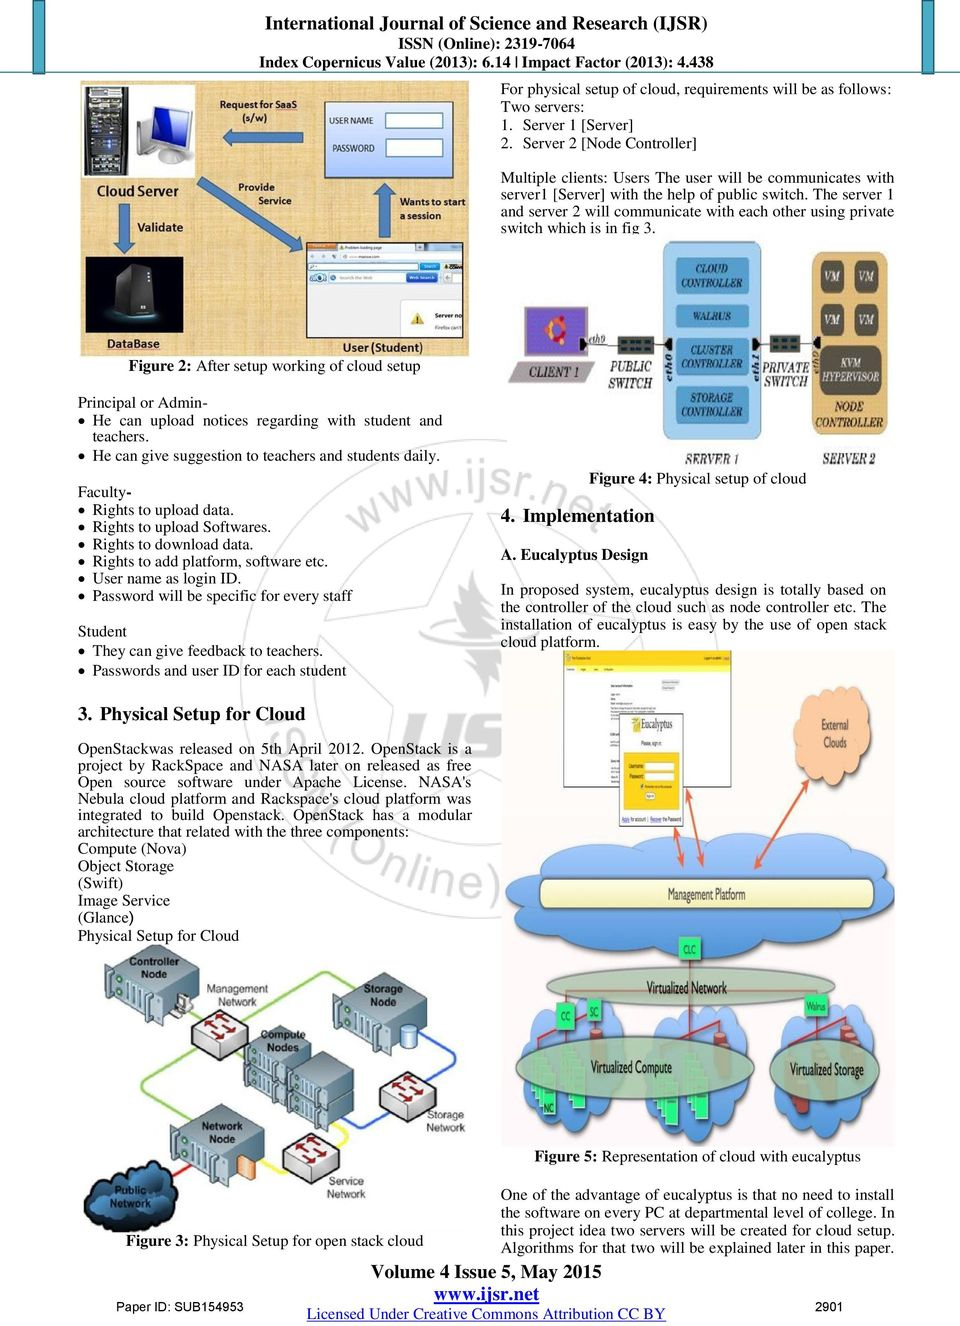 The server 1 and server 2 will communicate with each other using private switch which is in fig 3.